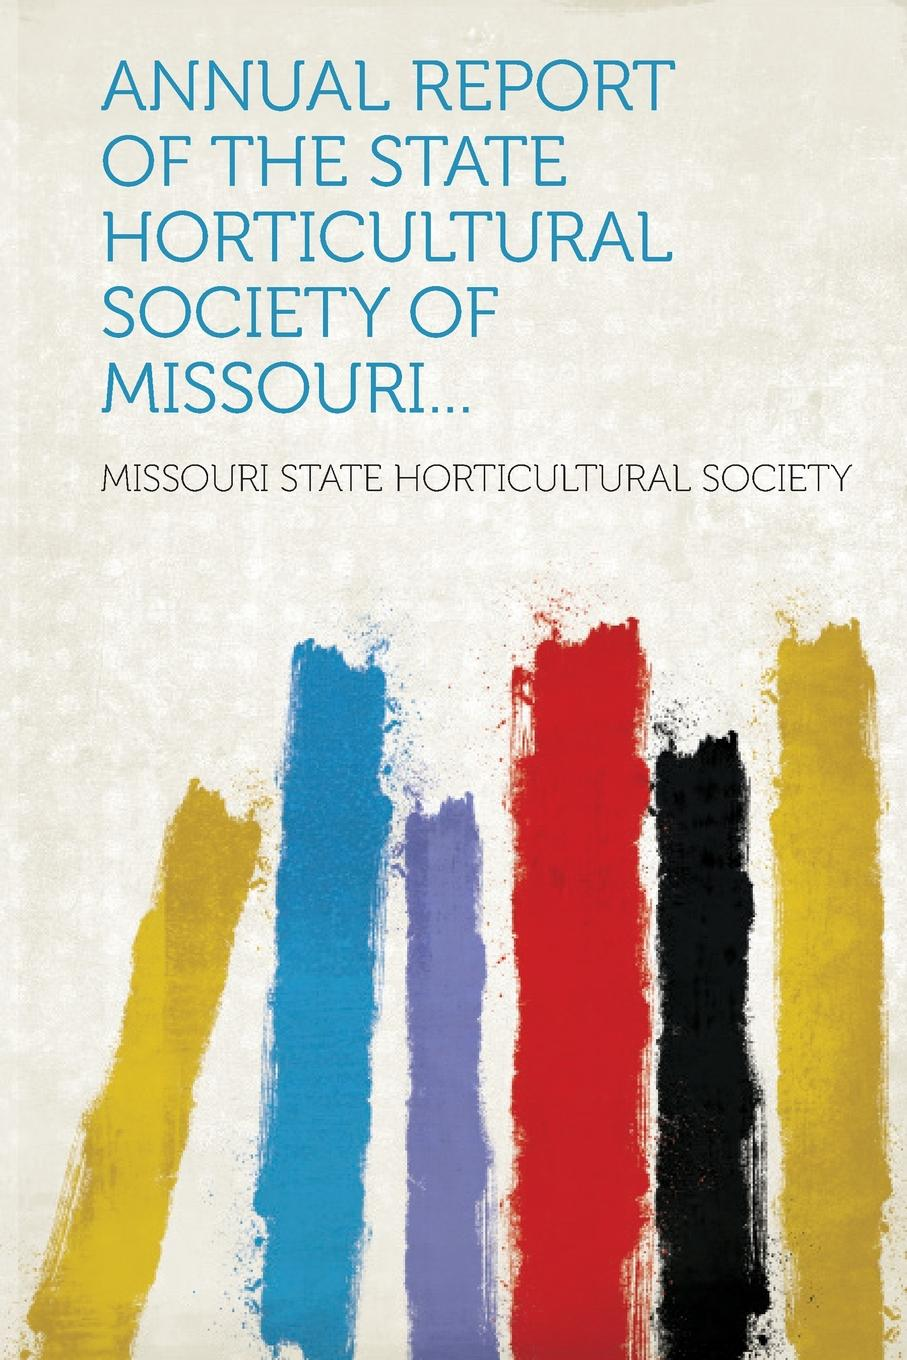 Missouri State Horticultural Society Annual report of the State Horticultural Society of Missouri...